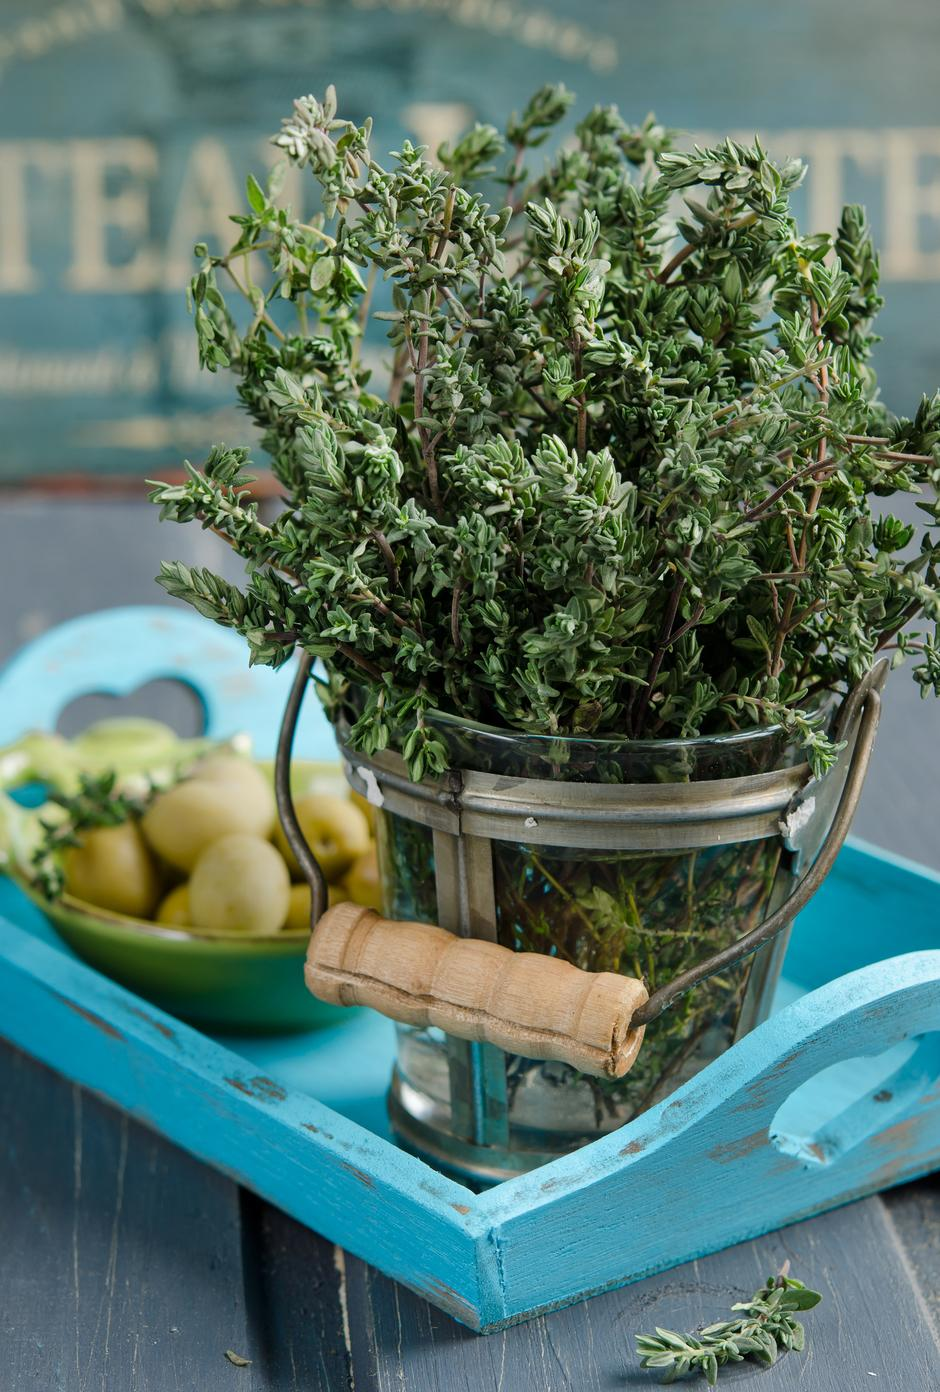 Thyme herb plant in a vase | Autor: Fotolia